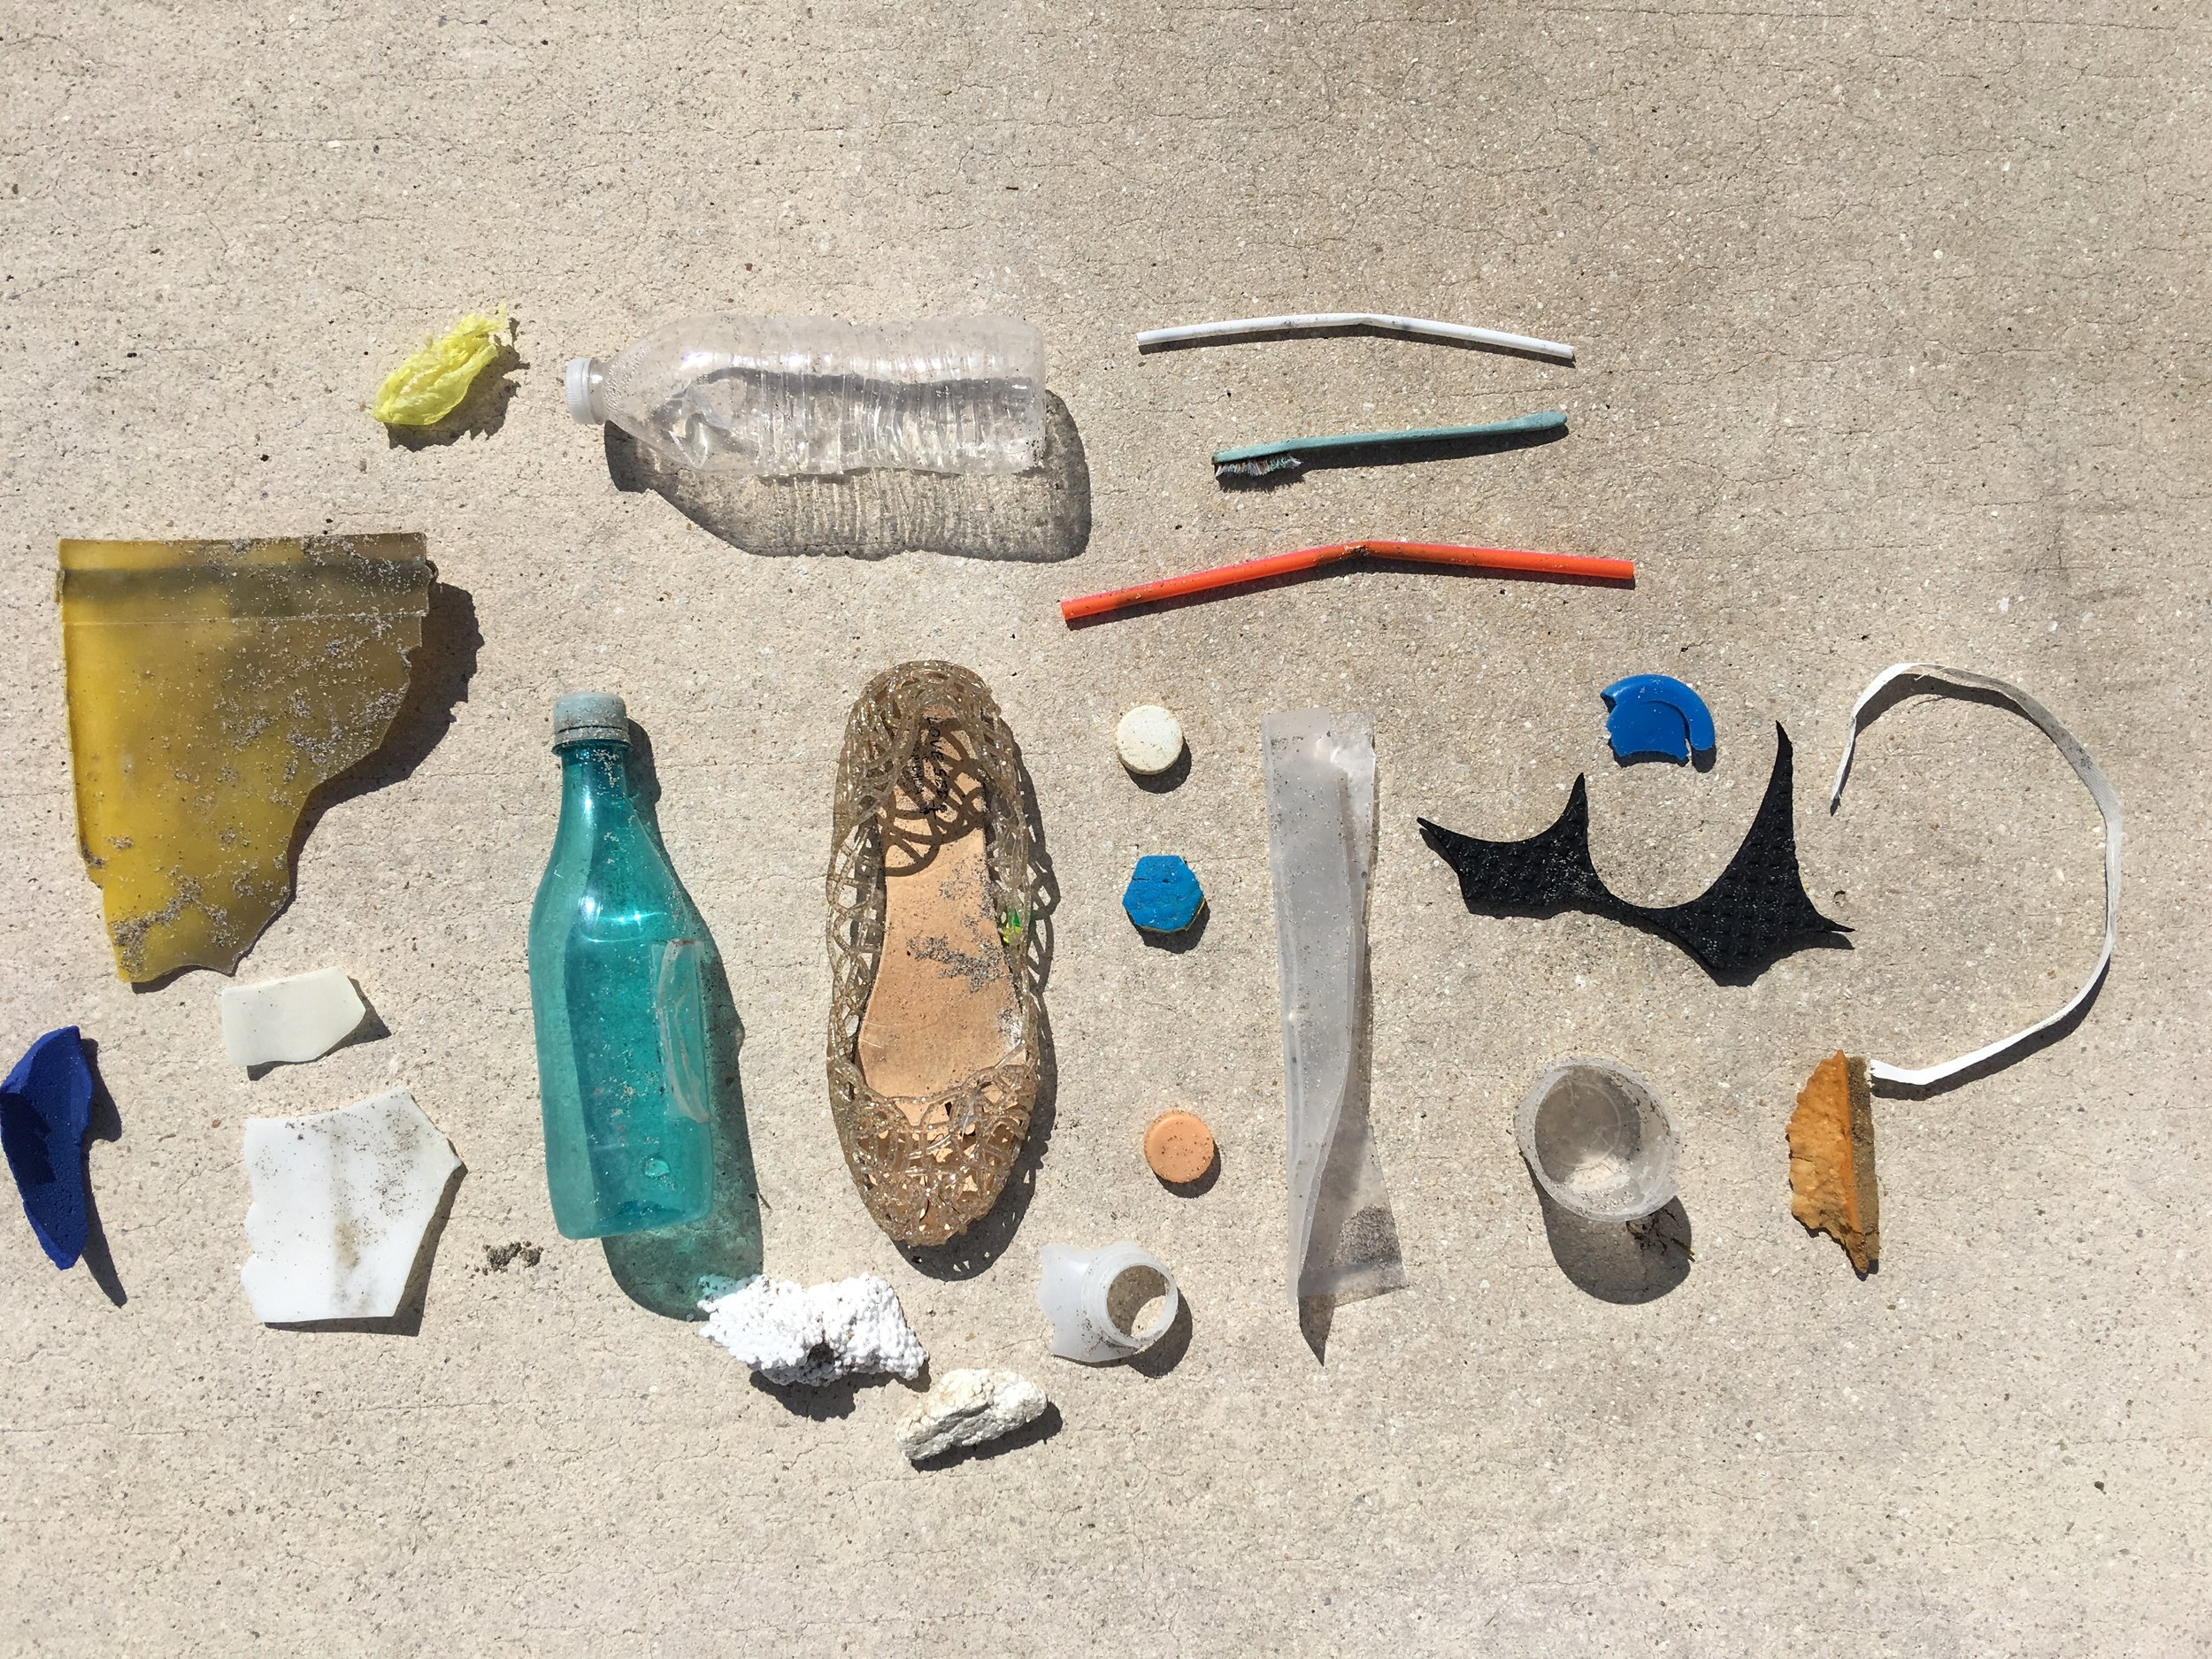 Items collected from Juno Beach, FL on October 19th, 2017